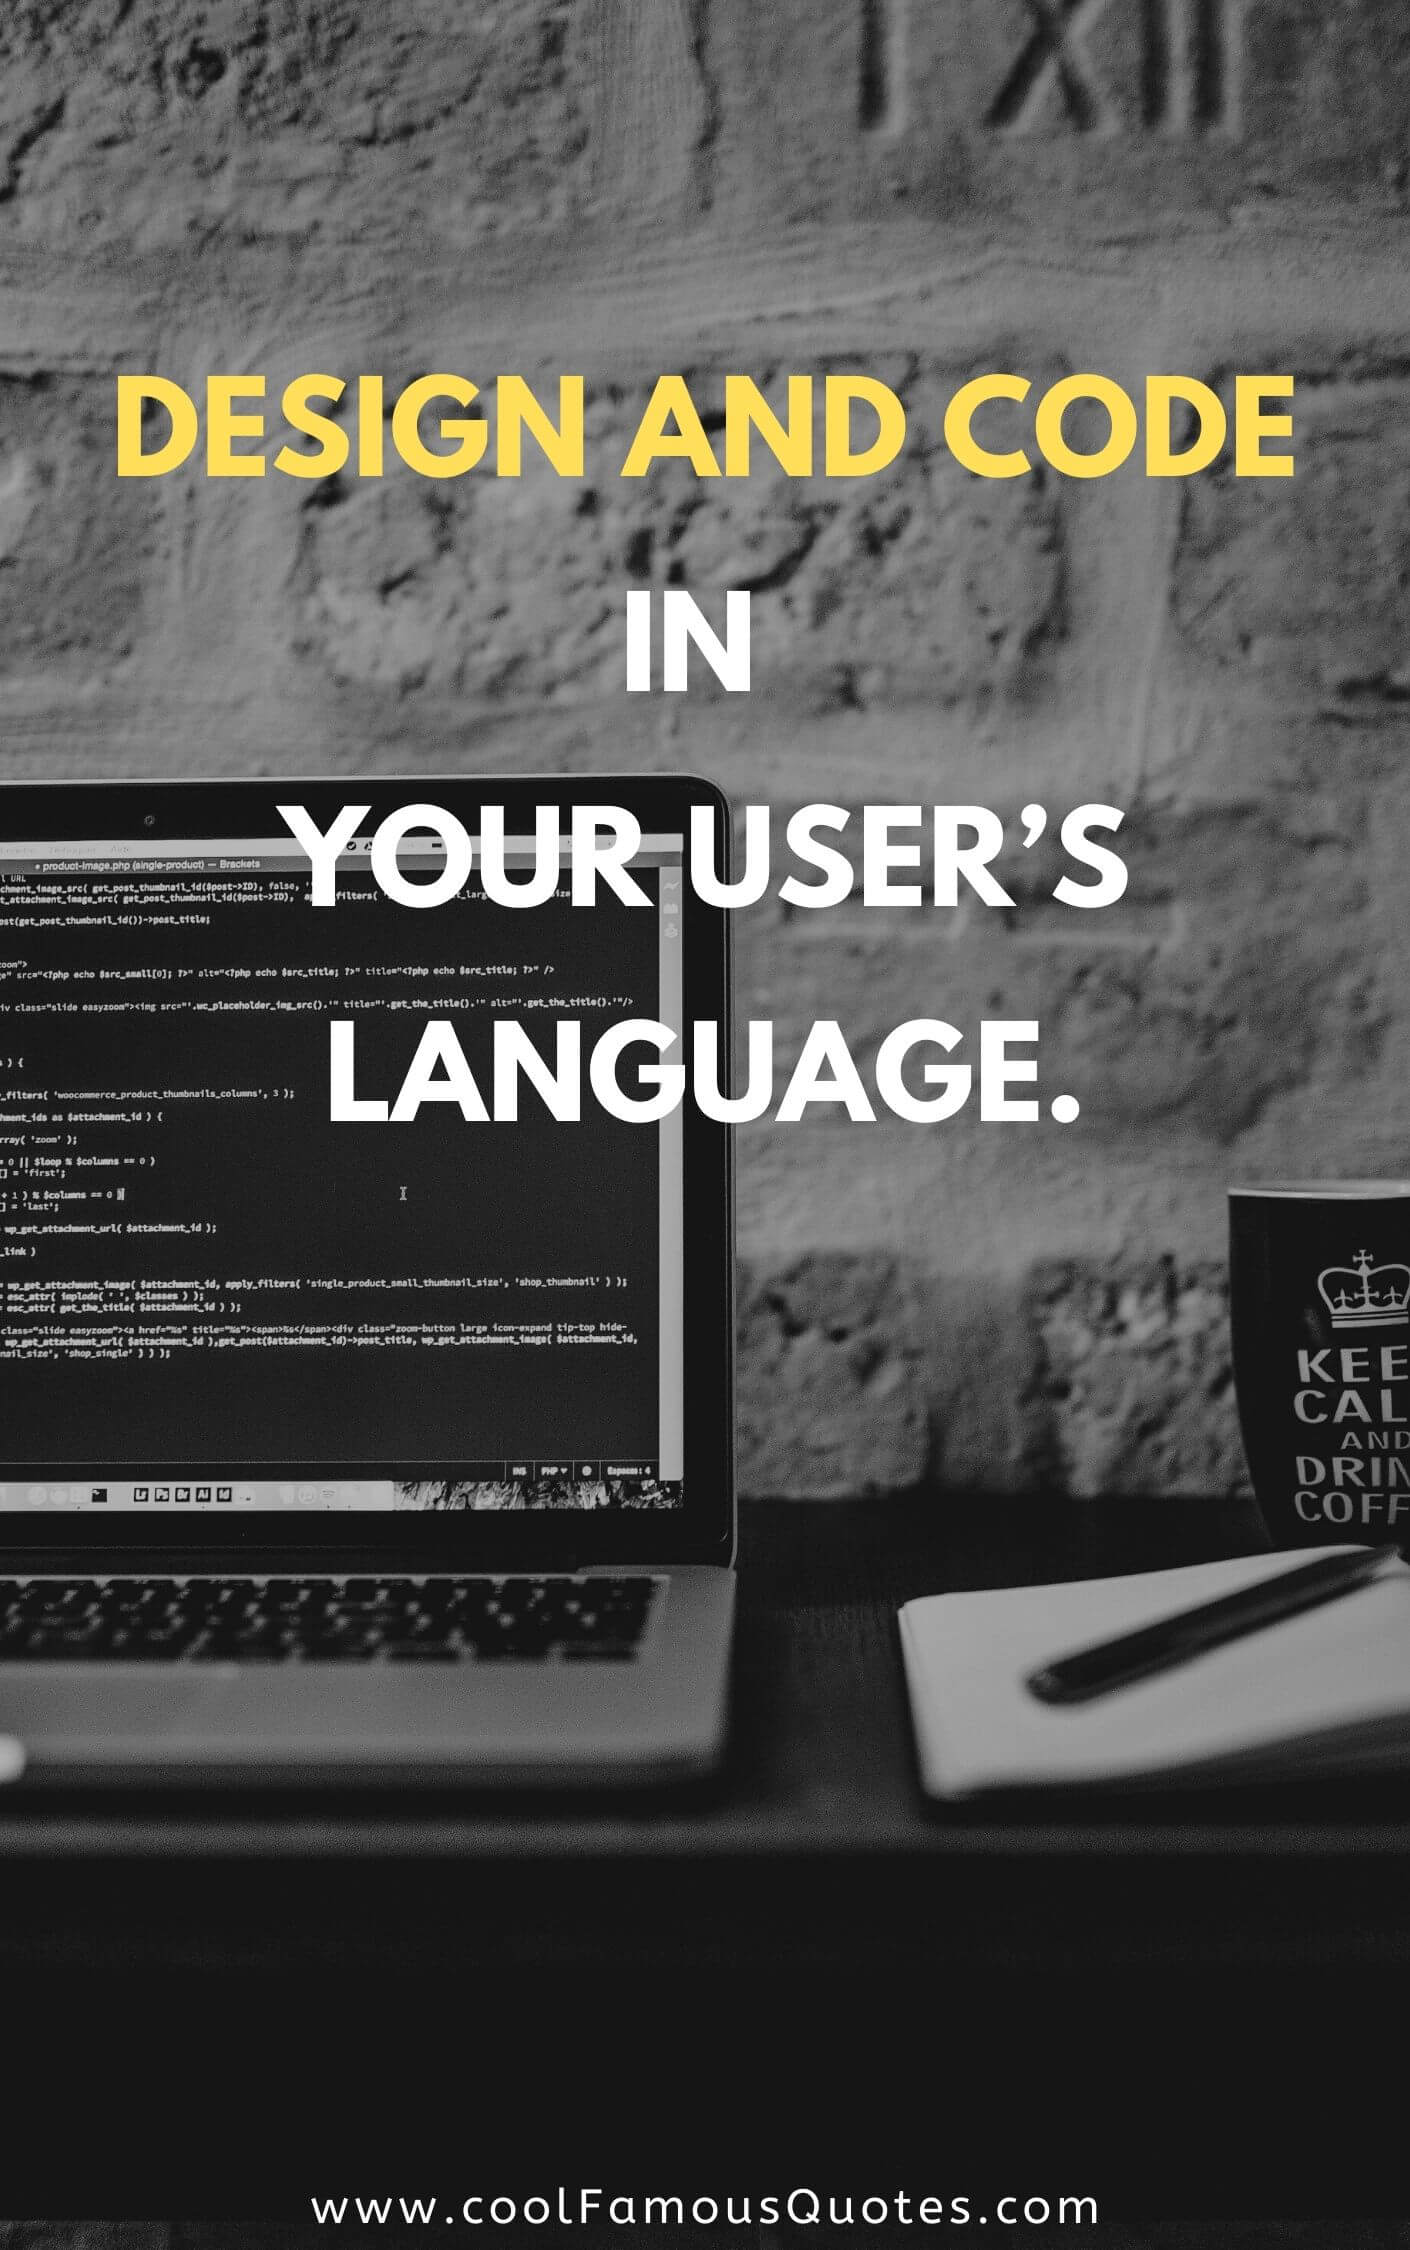 Design and code in your user's language